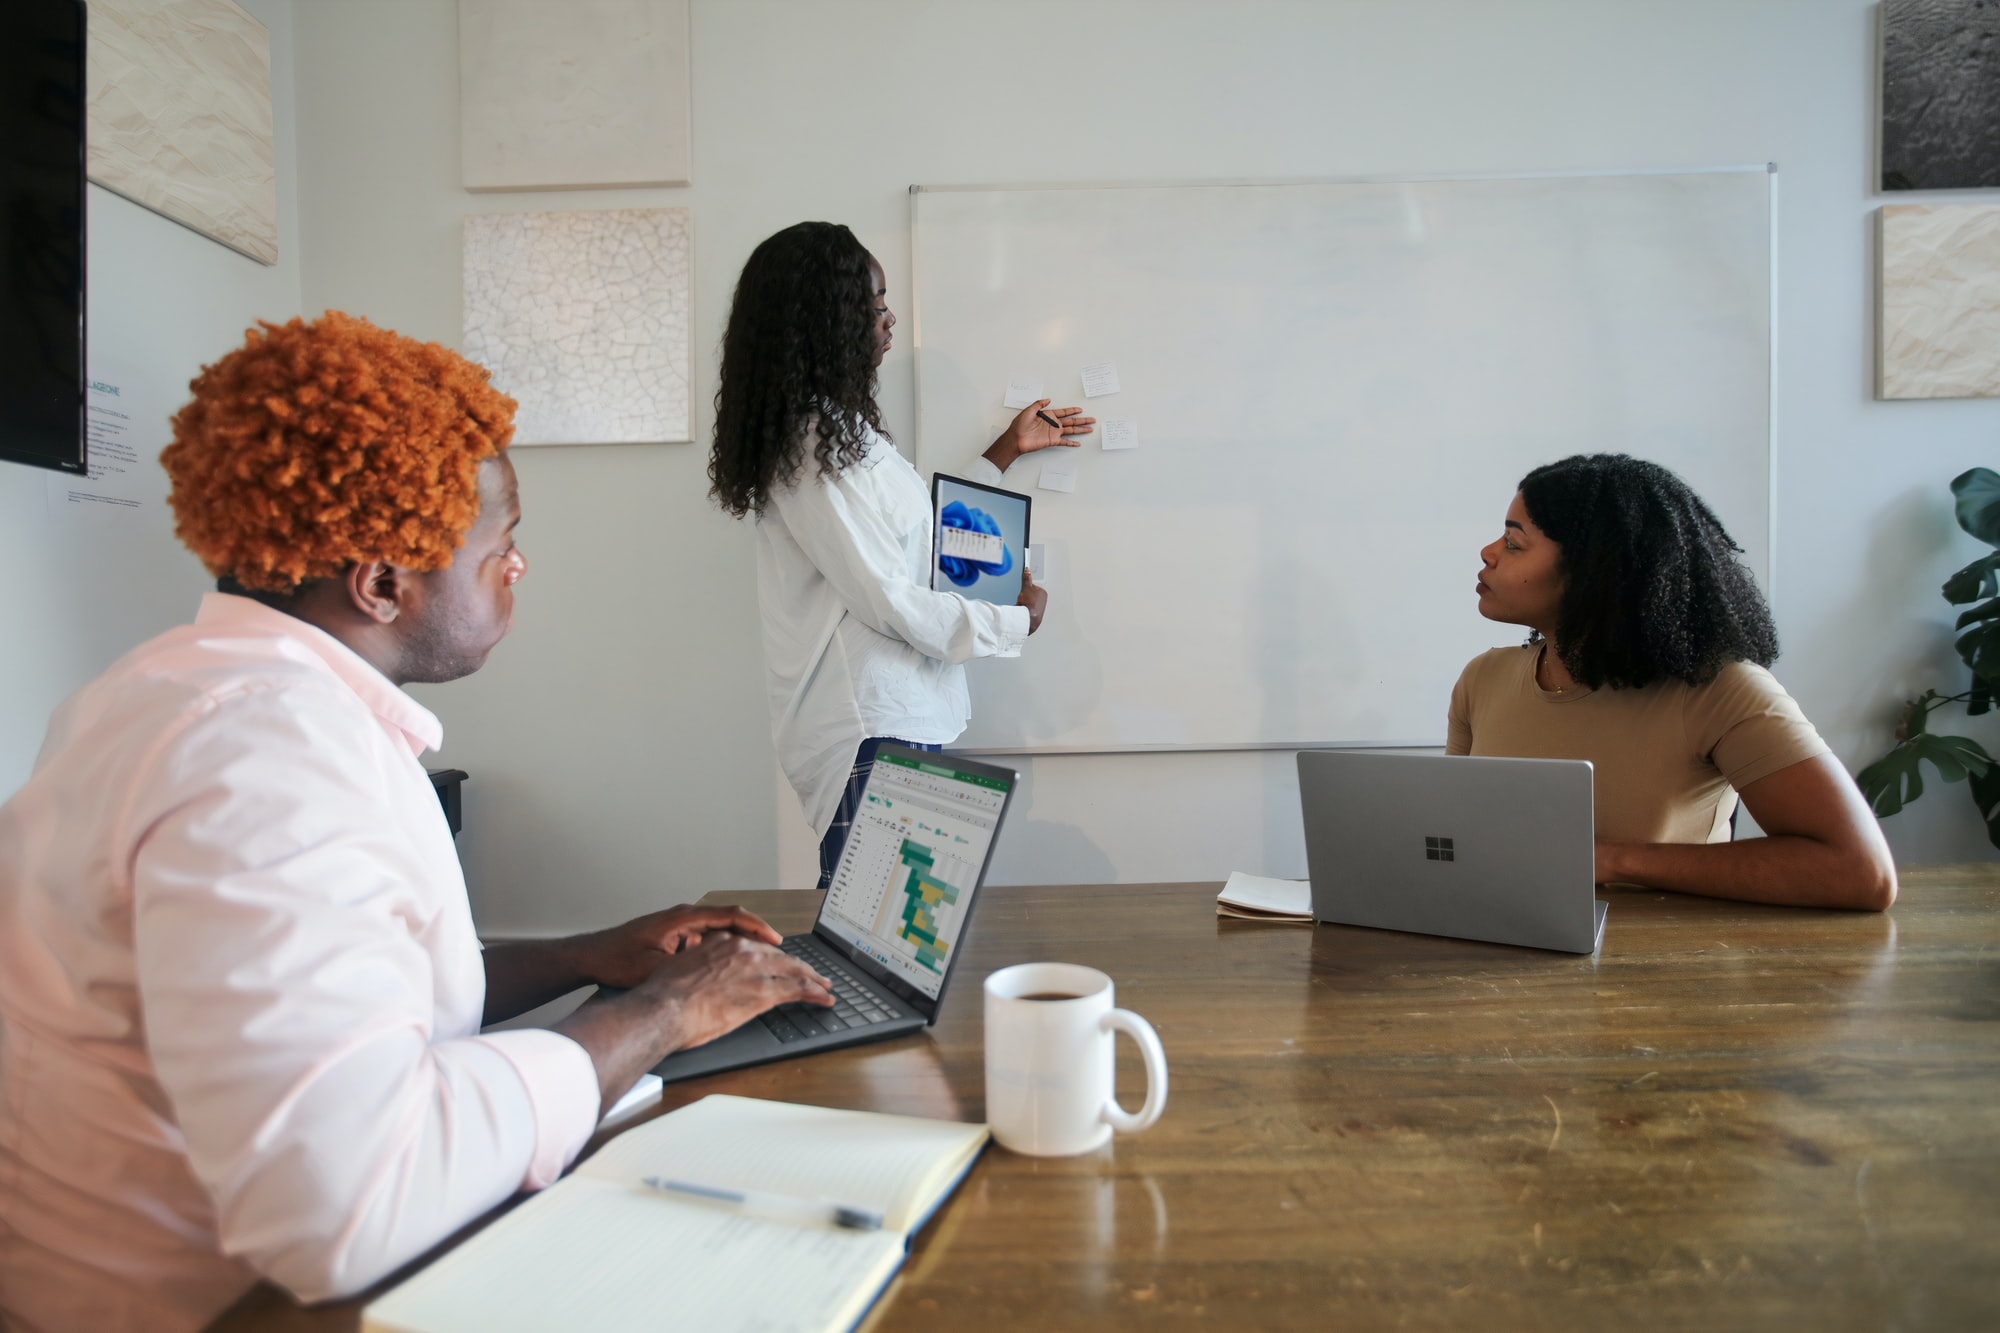 8 Reasons Why You Should Transcribe Your Meetings